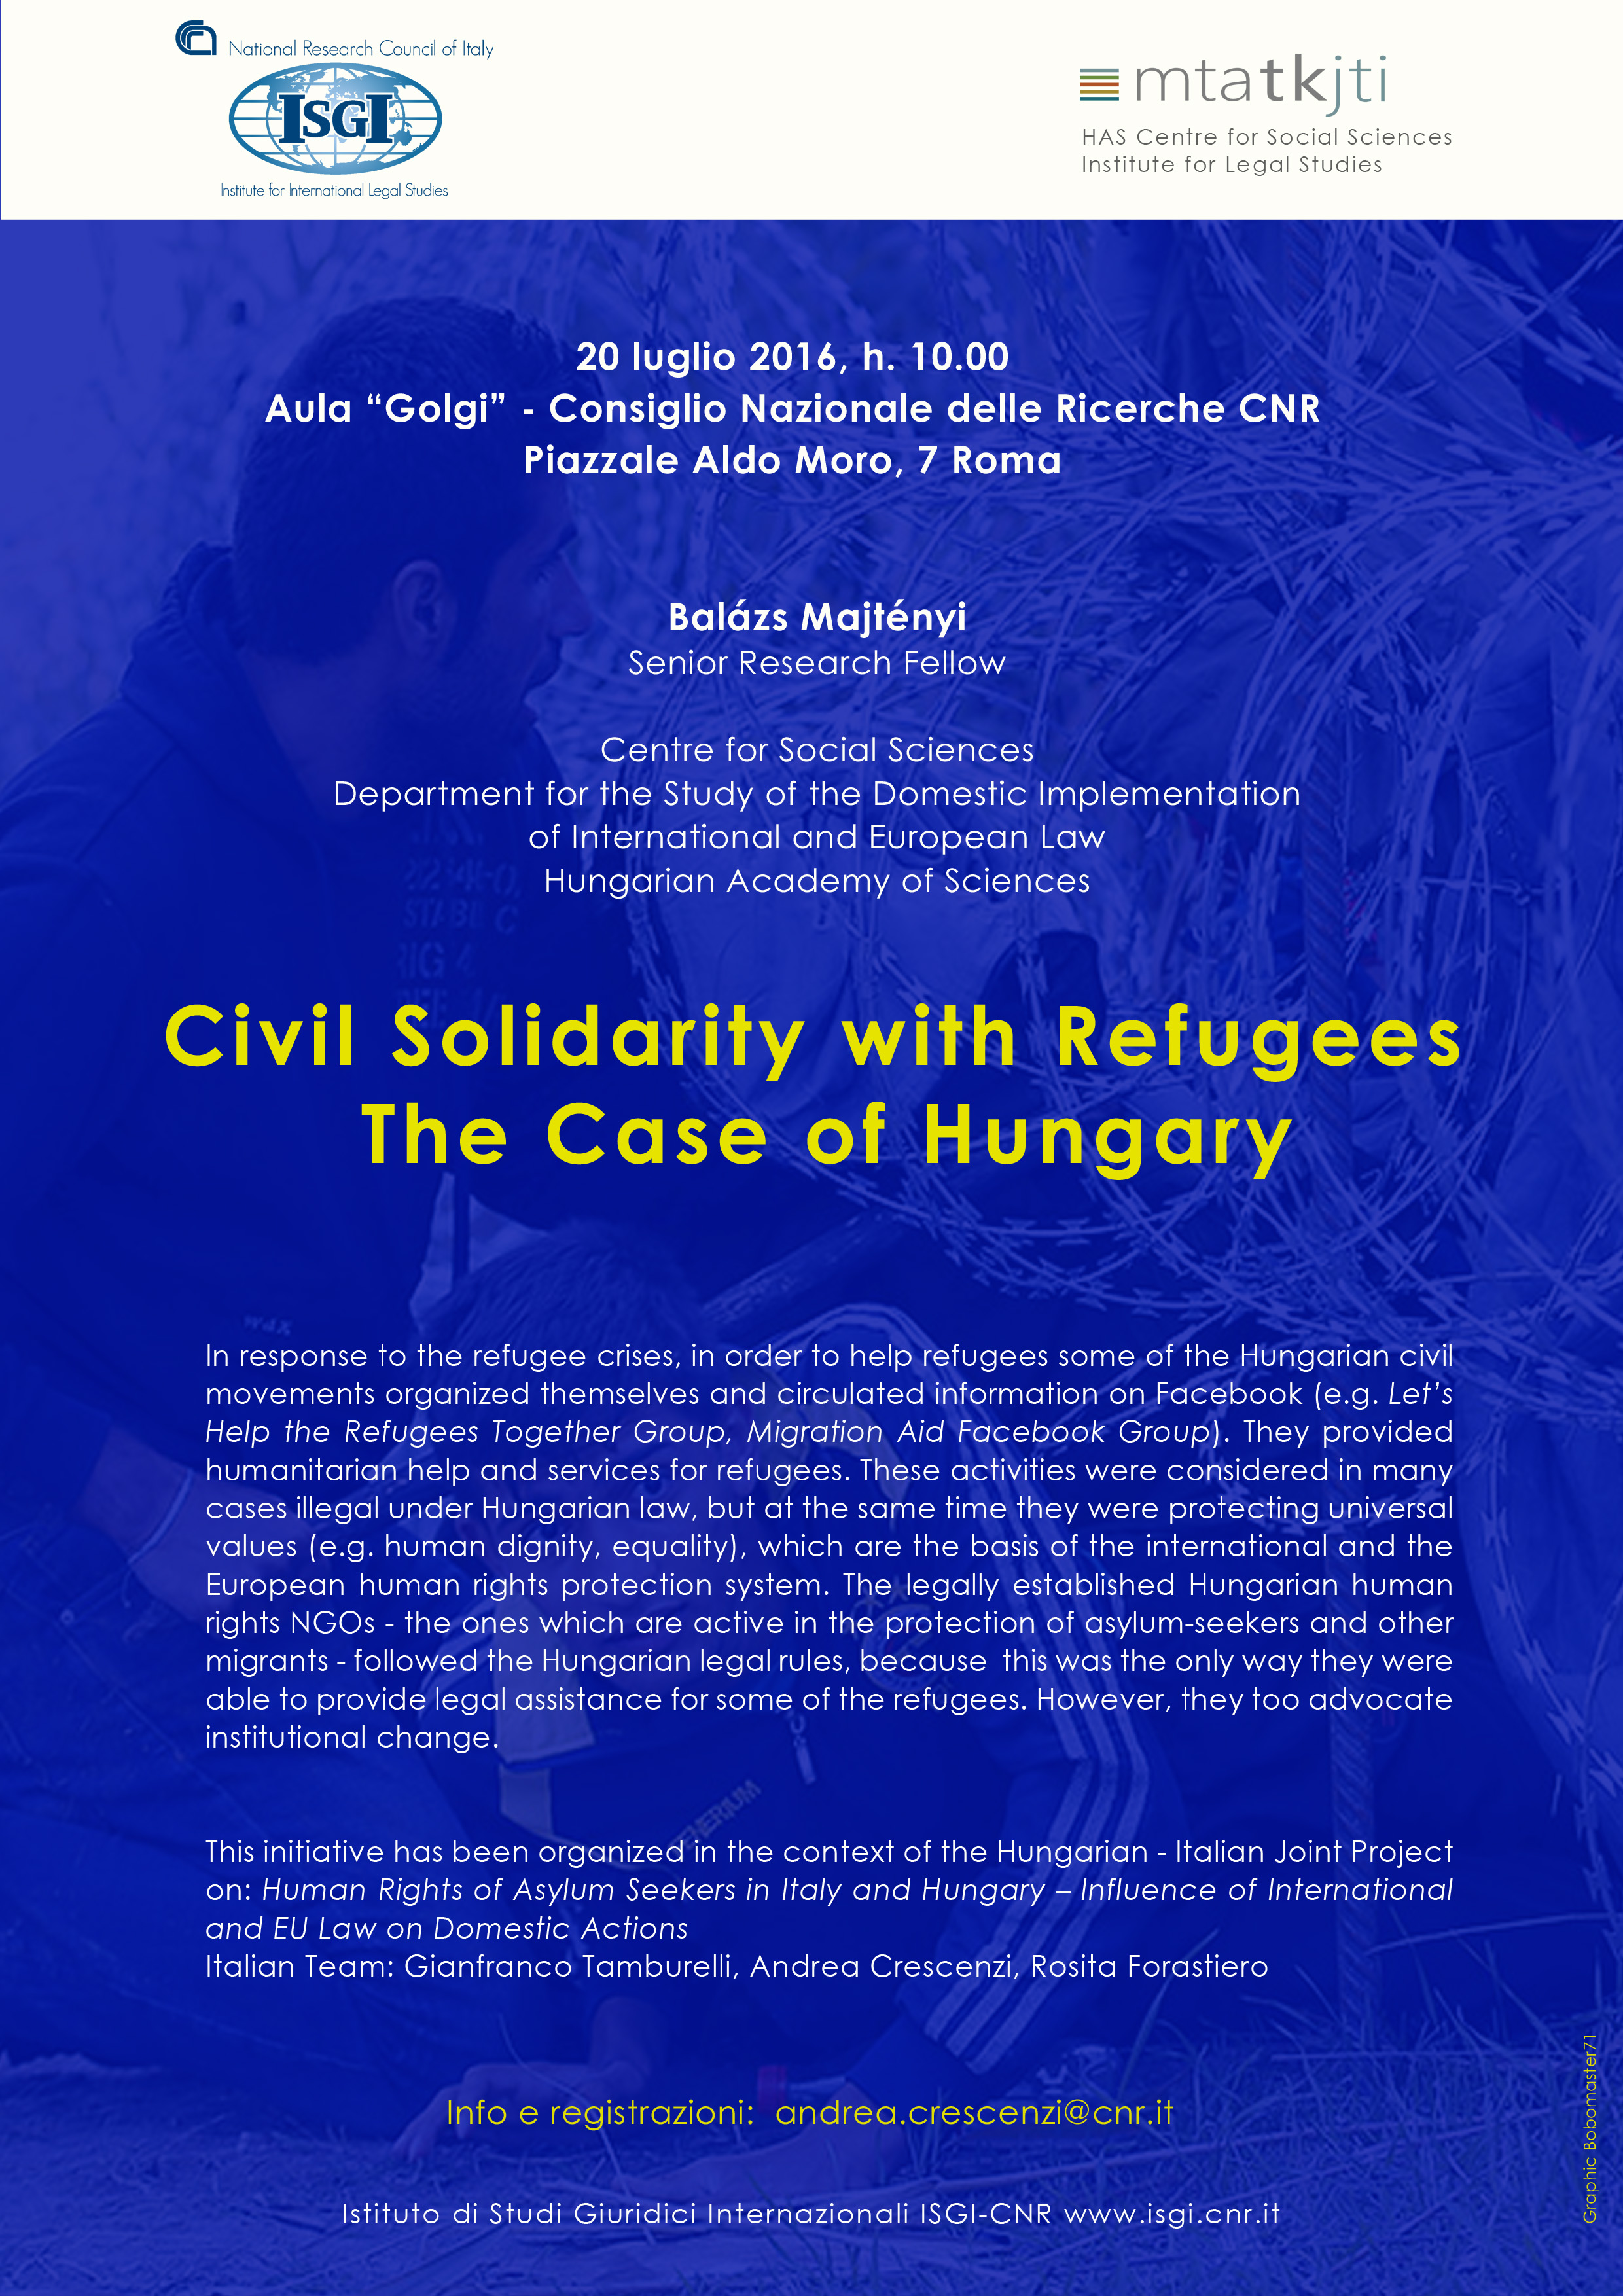 Civil Solidarity with Refugees. The Case of Hungary